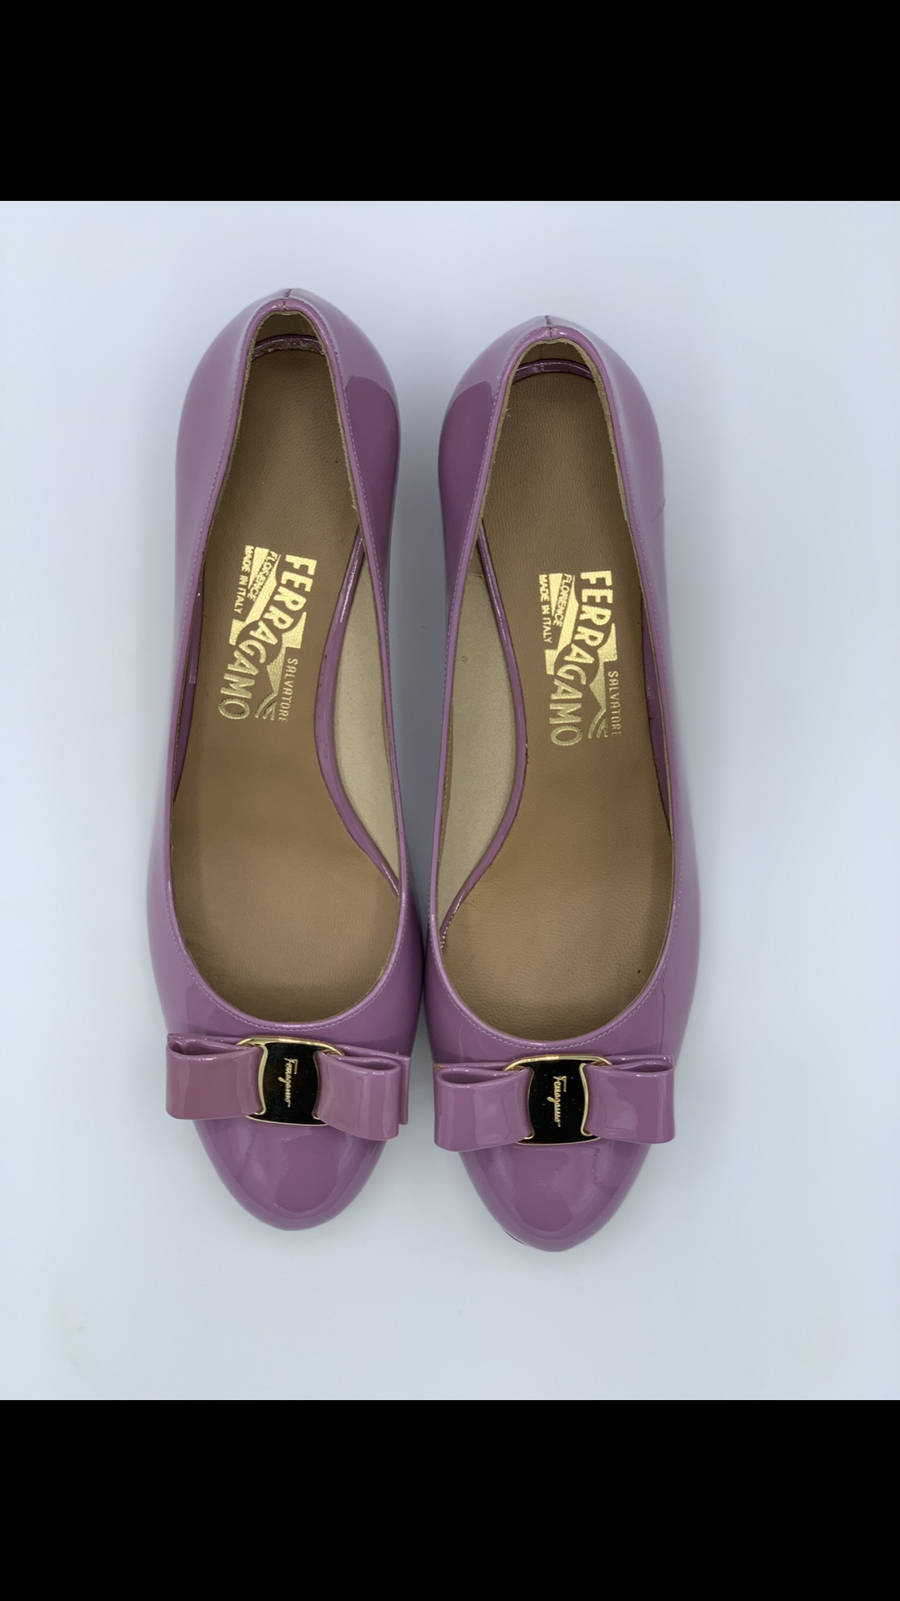 Salvatore-Ferragamo-Shoe-10-Pump-Patent-Leather-Bow-Lavender-New-Gold-Hardware_12611D.jpg